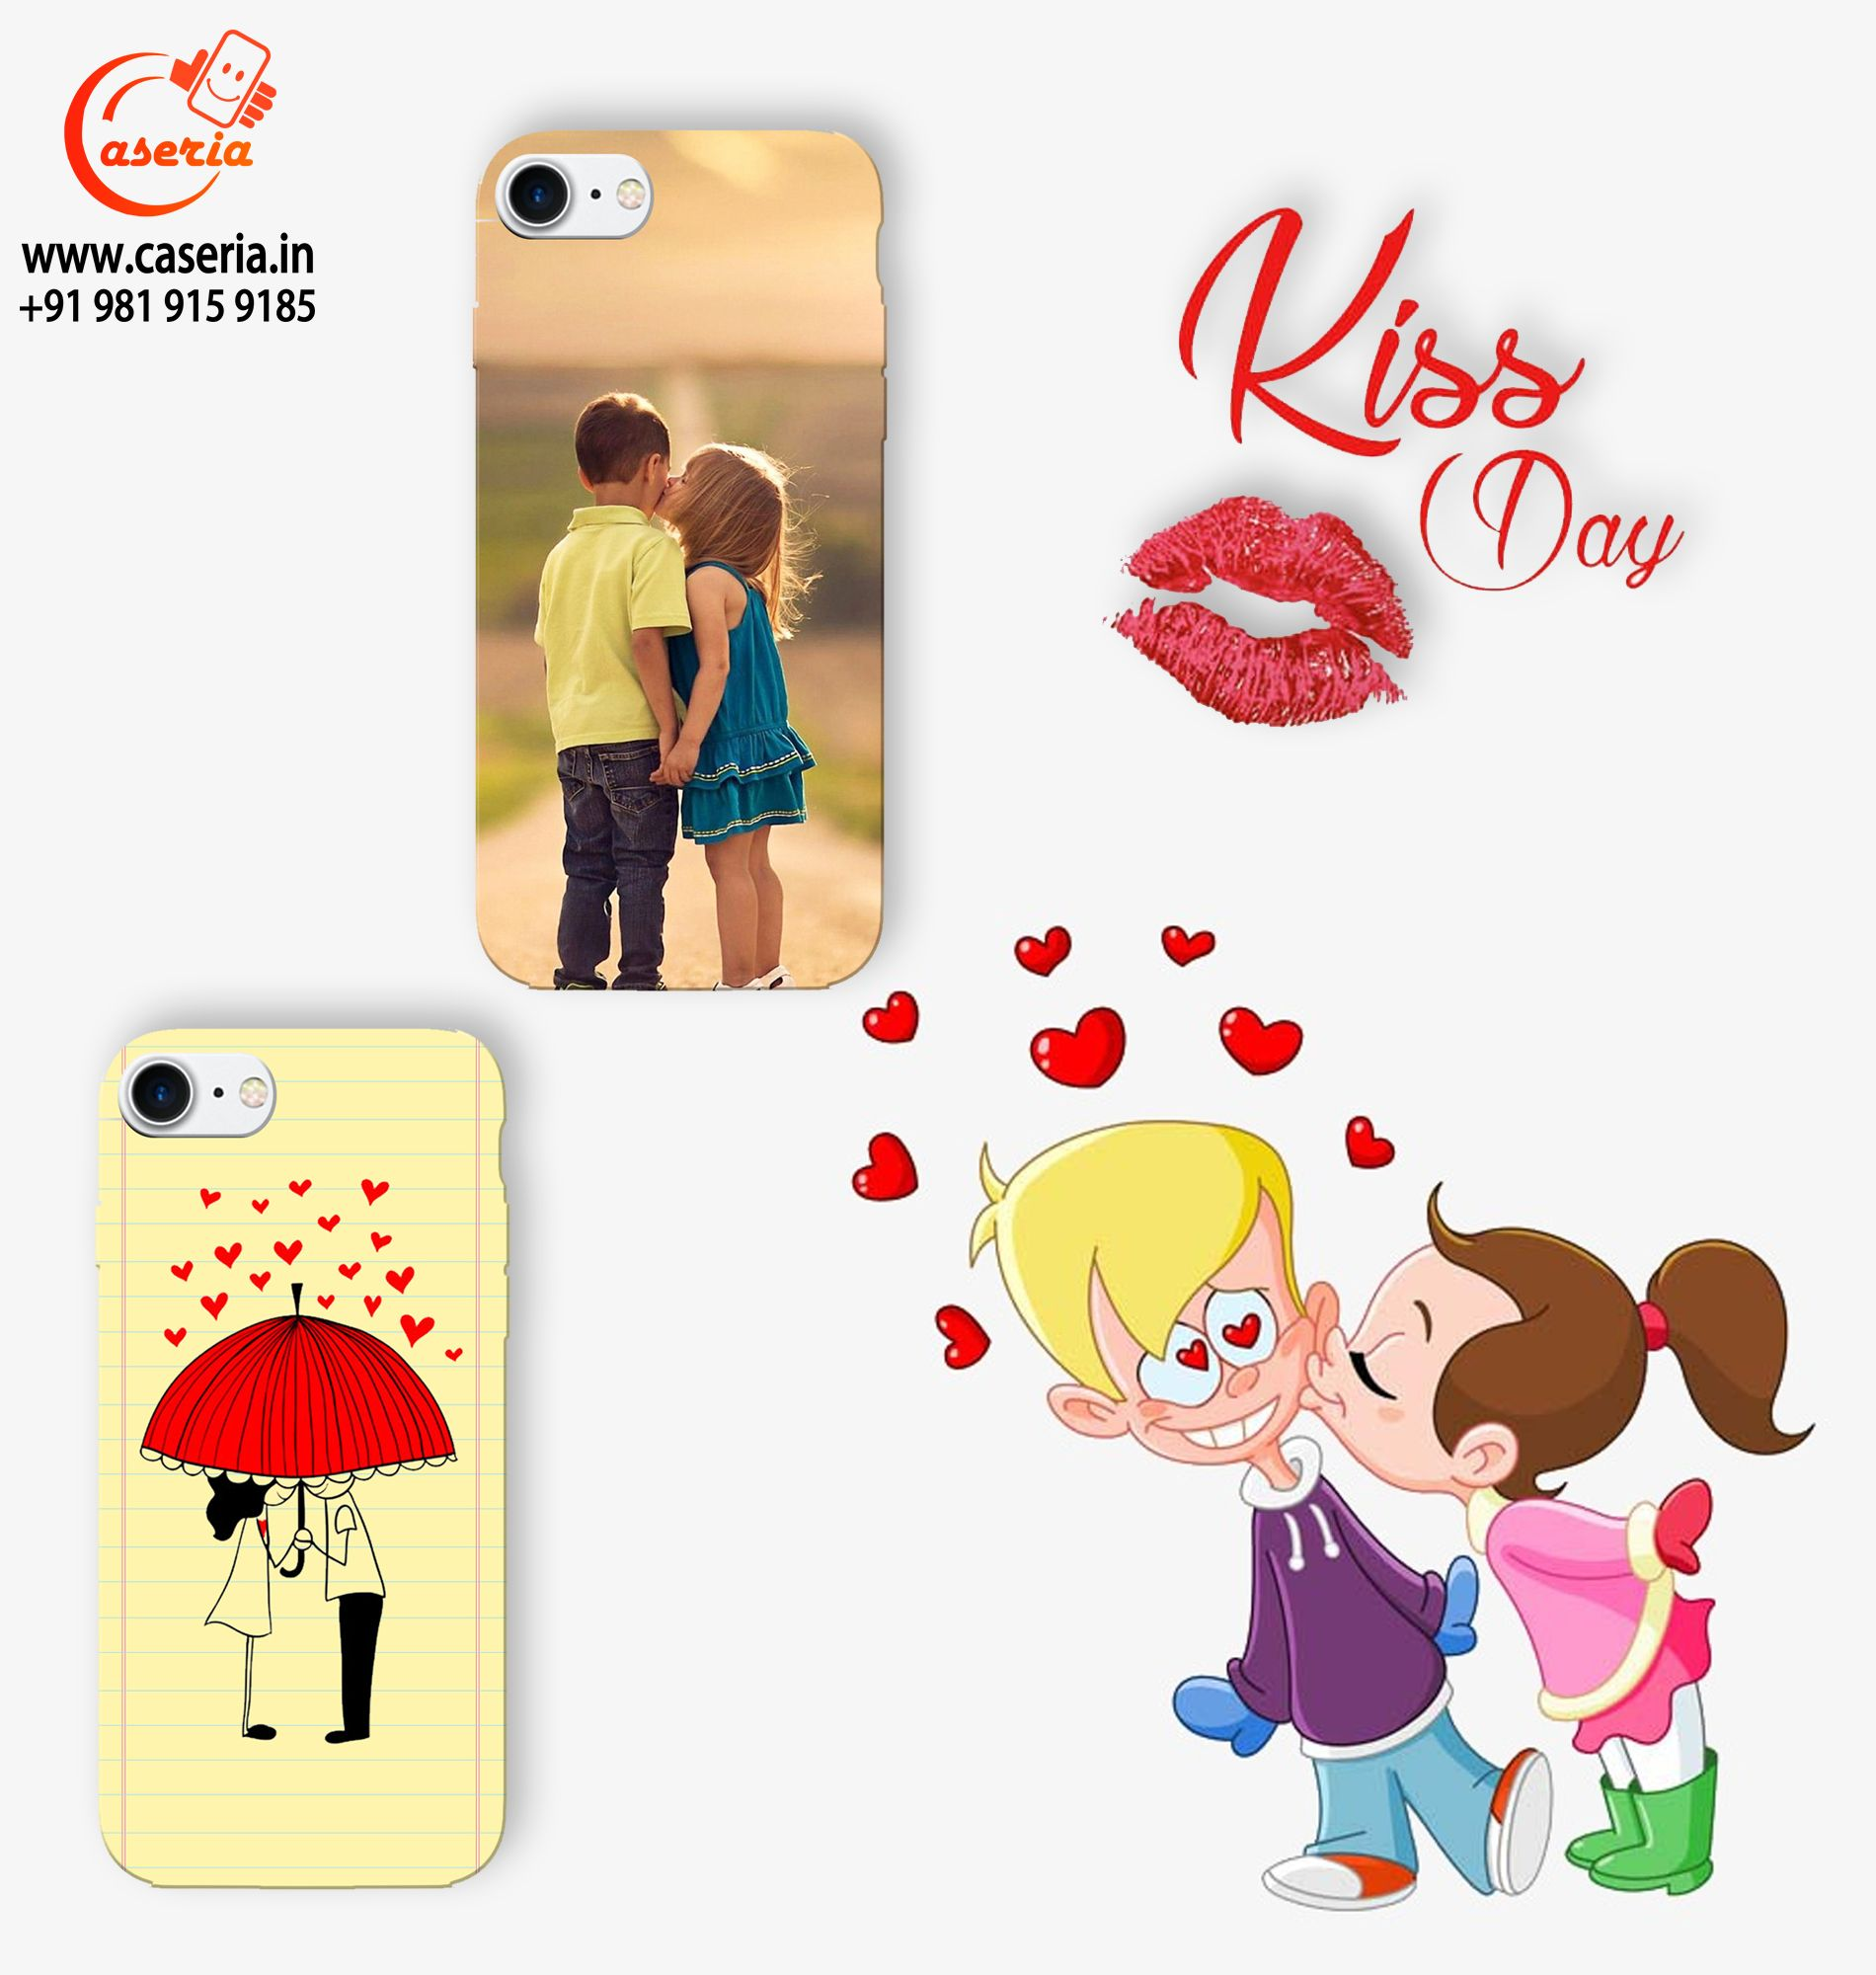 Buy Kiss Day Gifts Online And Send A Surprising Gift To Your Loved